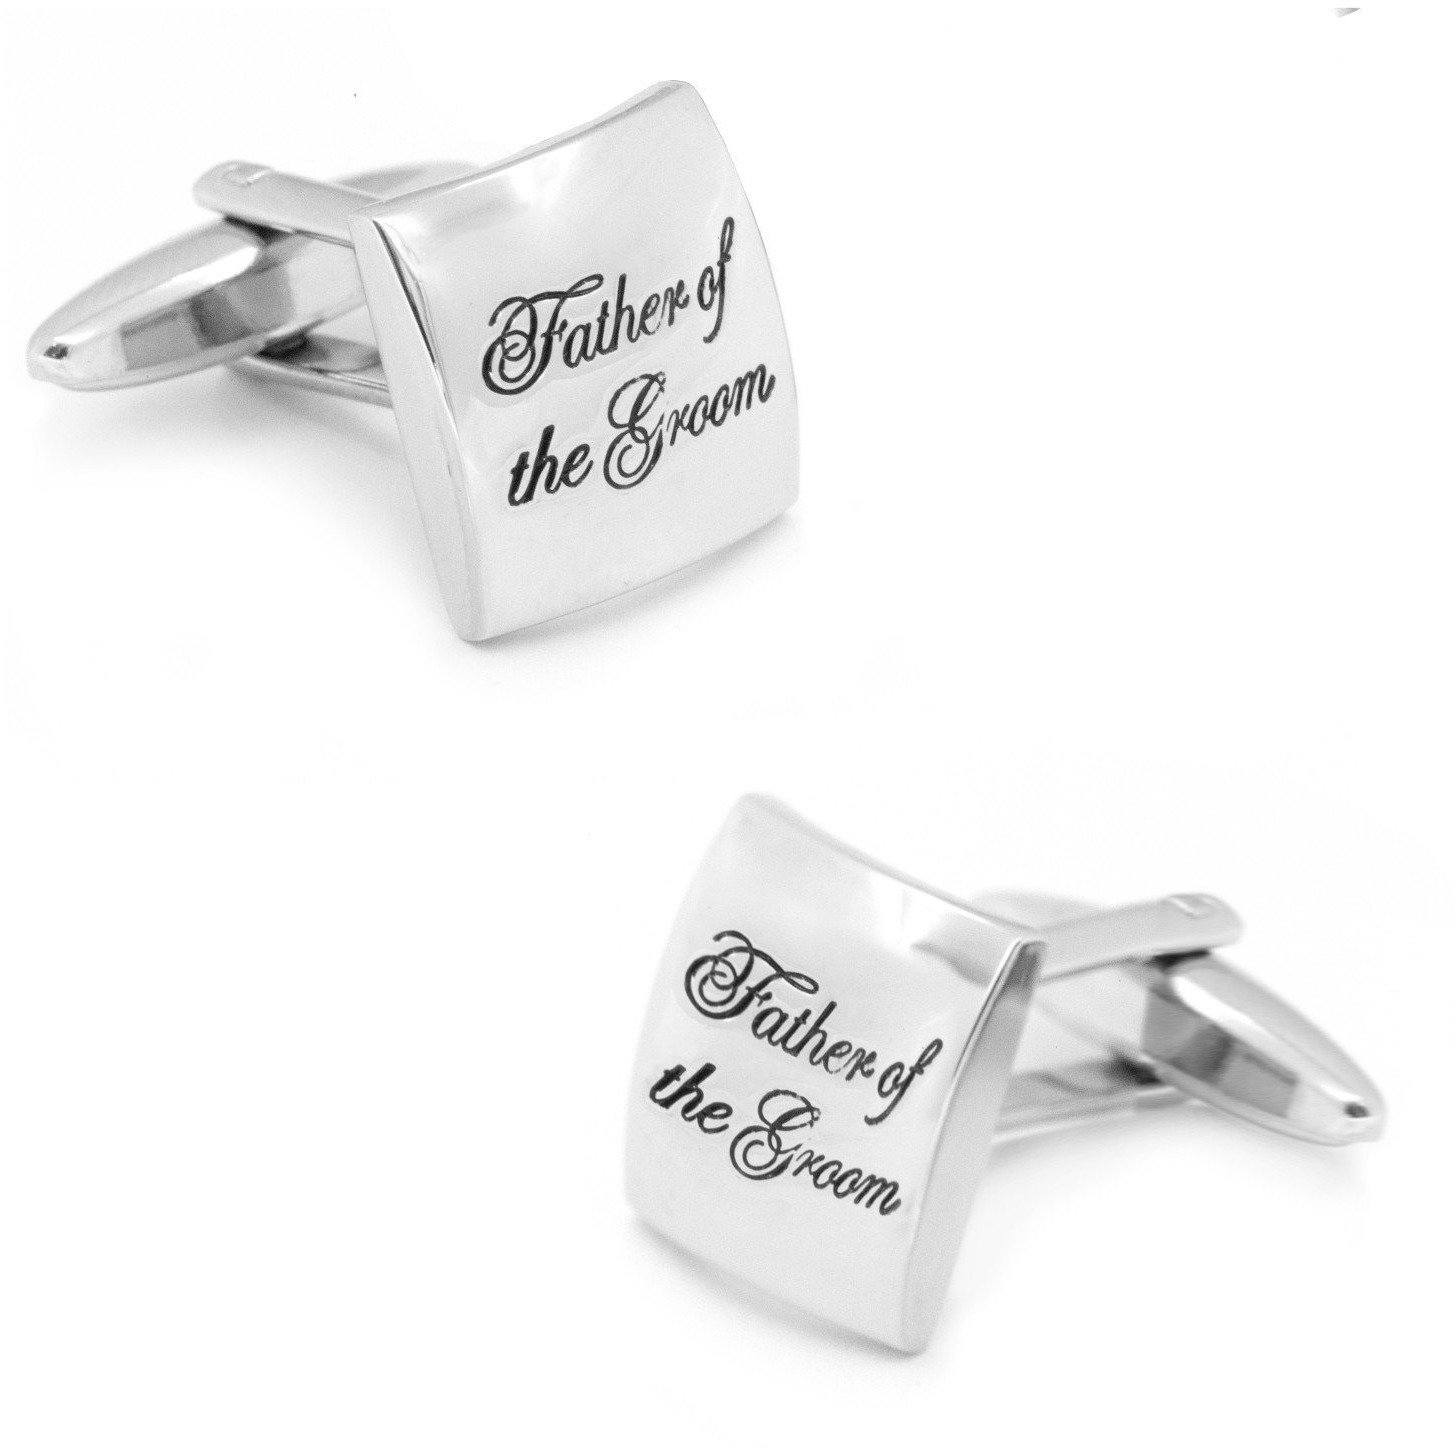 Father of the Groom Curved Silver, Wedding Cufflinks, Cuffed.com.au, CL9573, $29.00